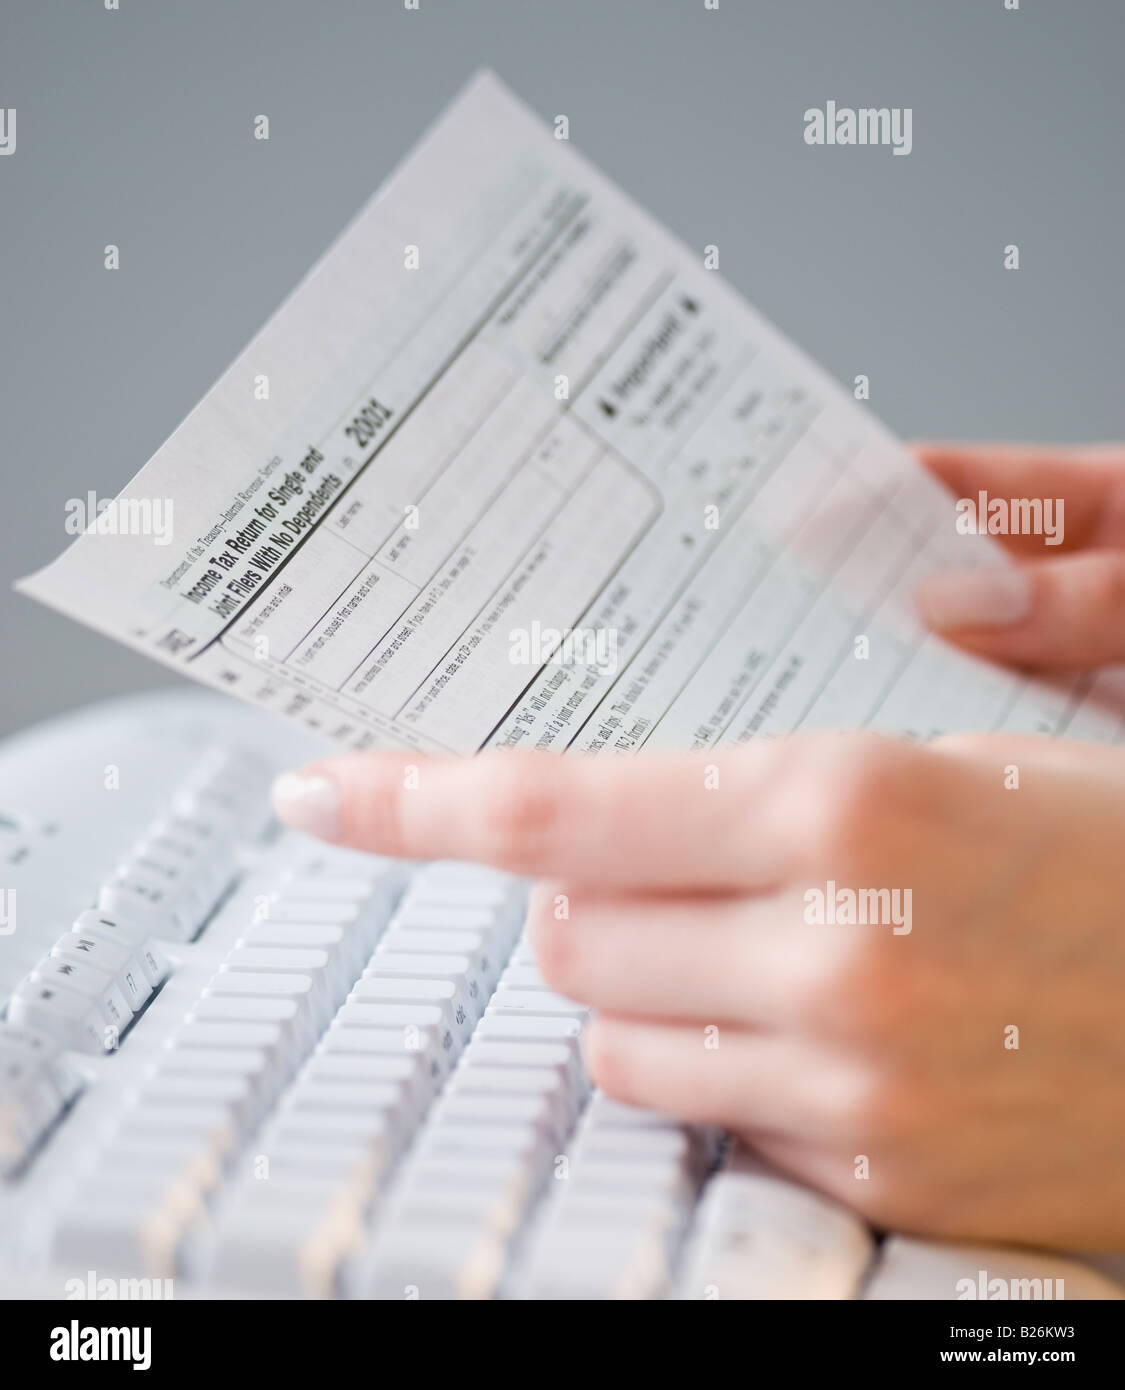 Woman holding tax form over keyboard - Stock Image